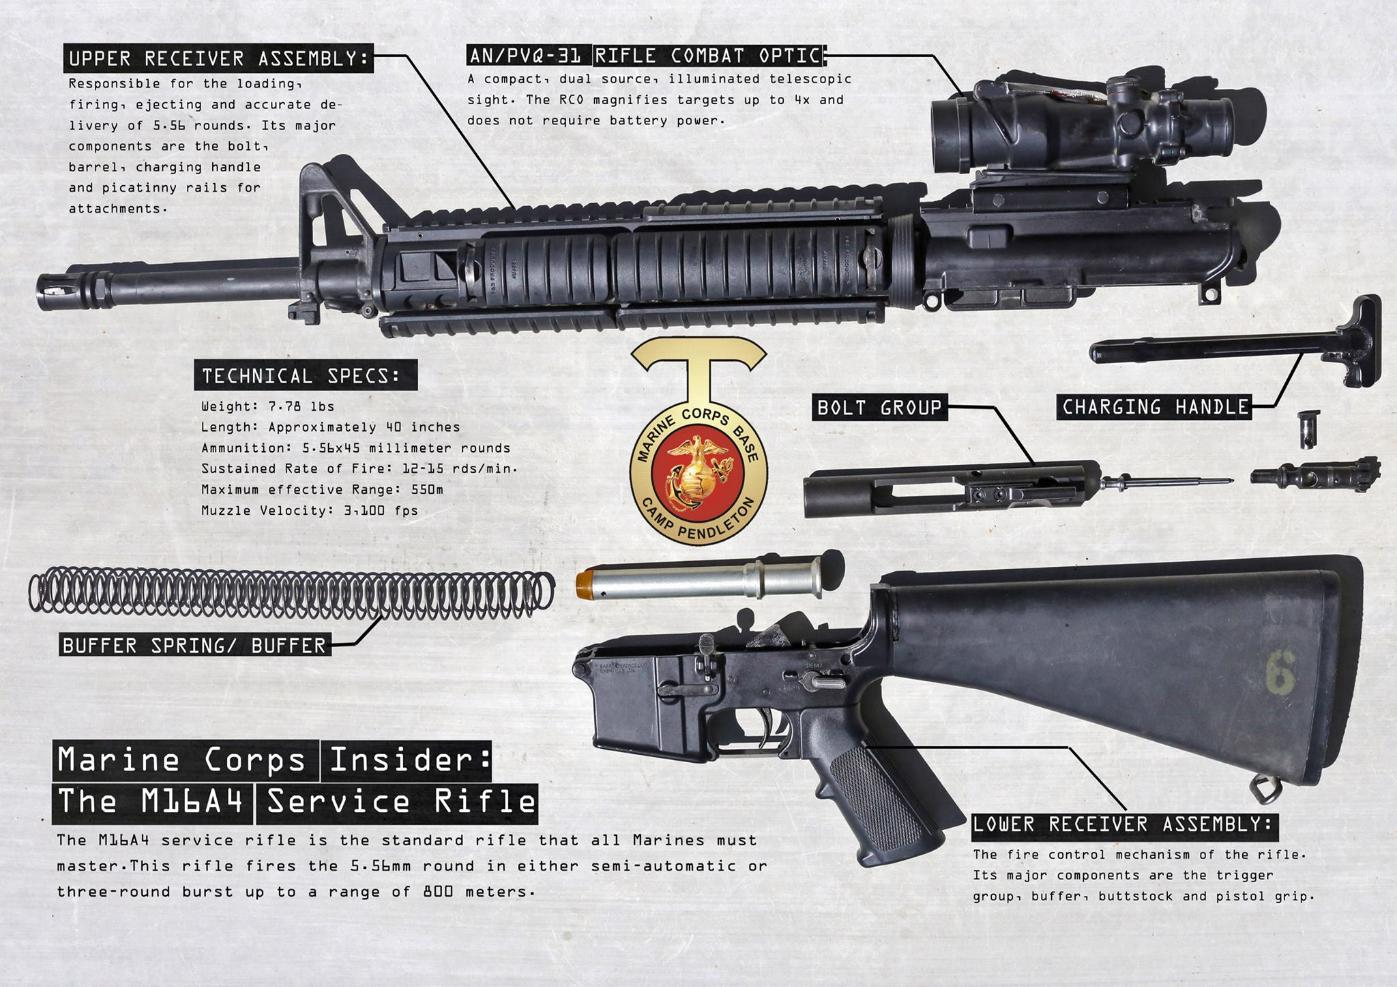 m16 exploded diagram brown bear south texas marksmanship training center disassembled view